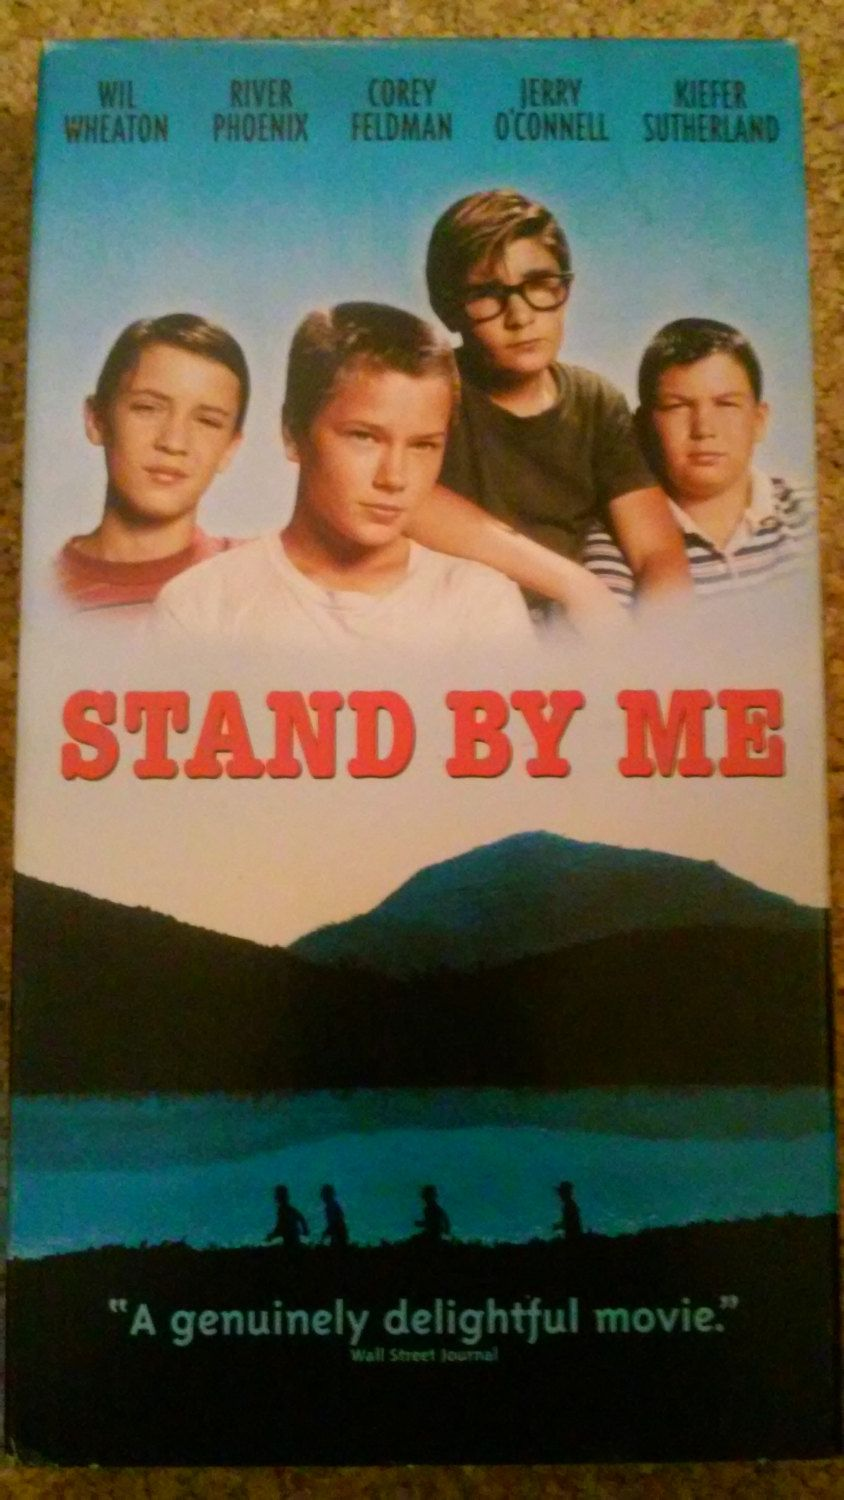 Stand By Me On Vhs Tape In 2020 Good Movies Streaming Movies I Movie